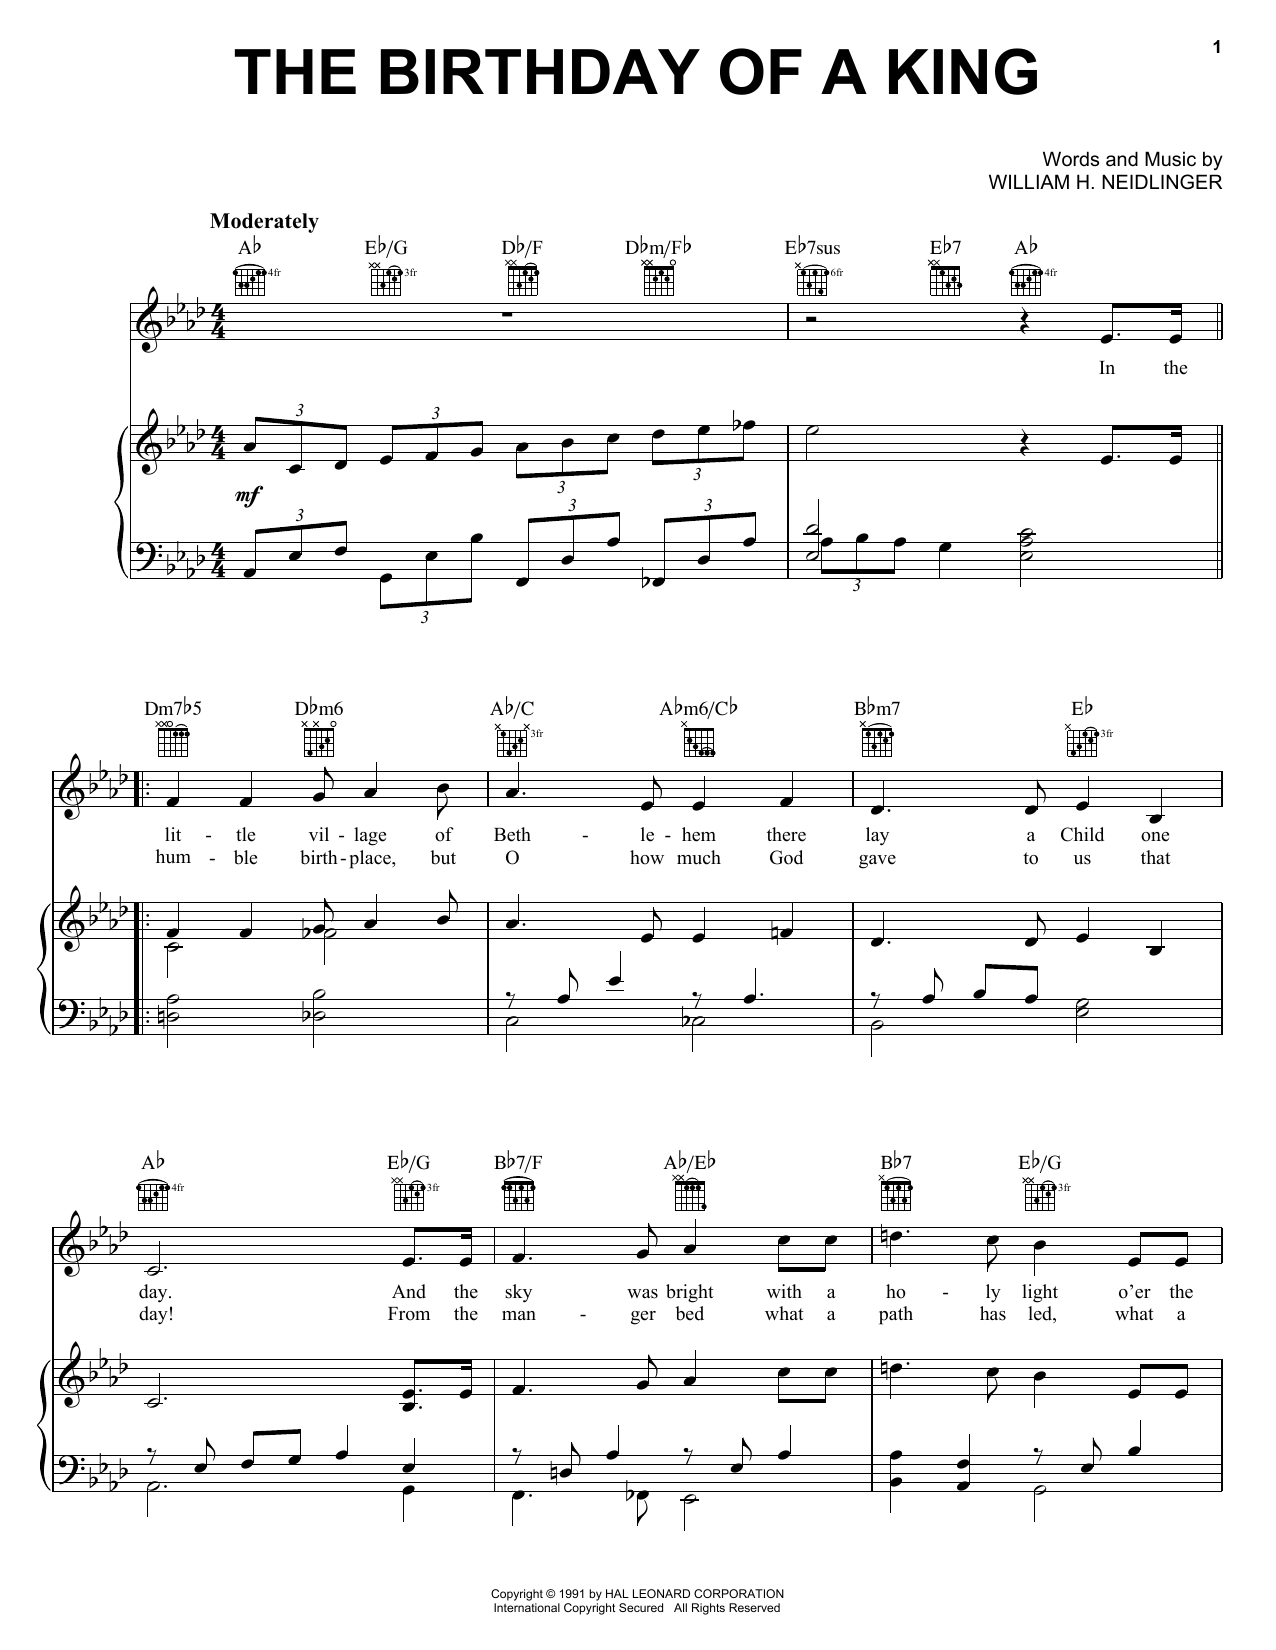 The Birthday of a King (Neidlinger) Sheet Music